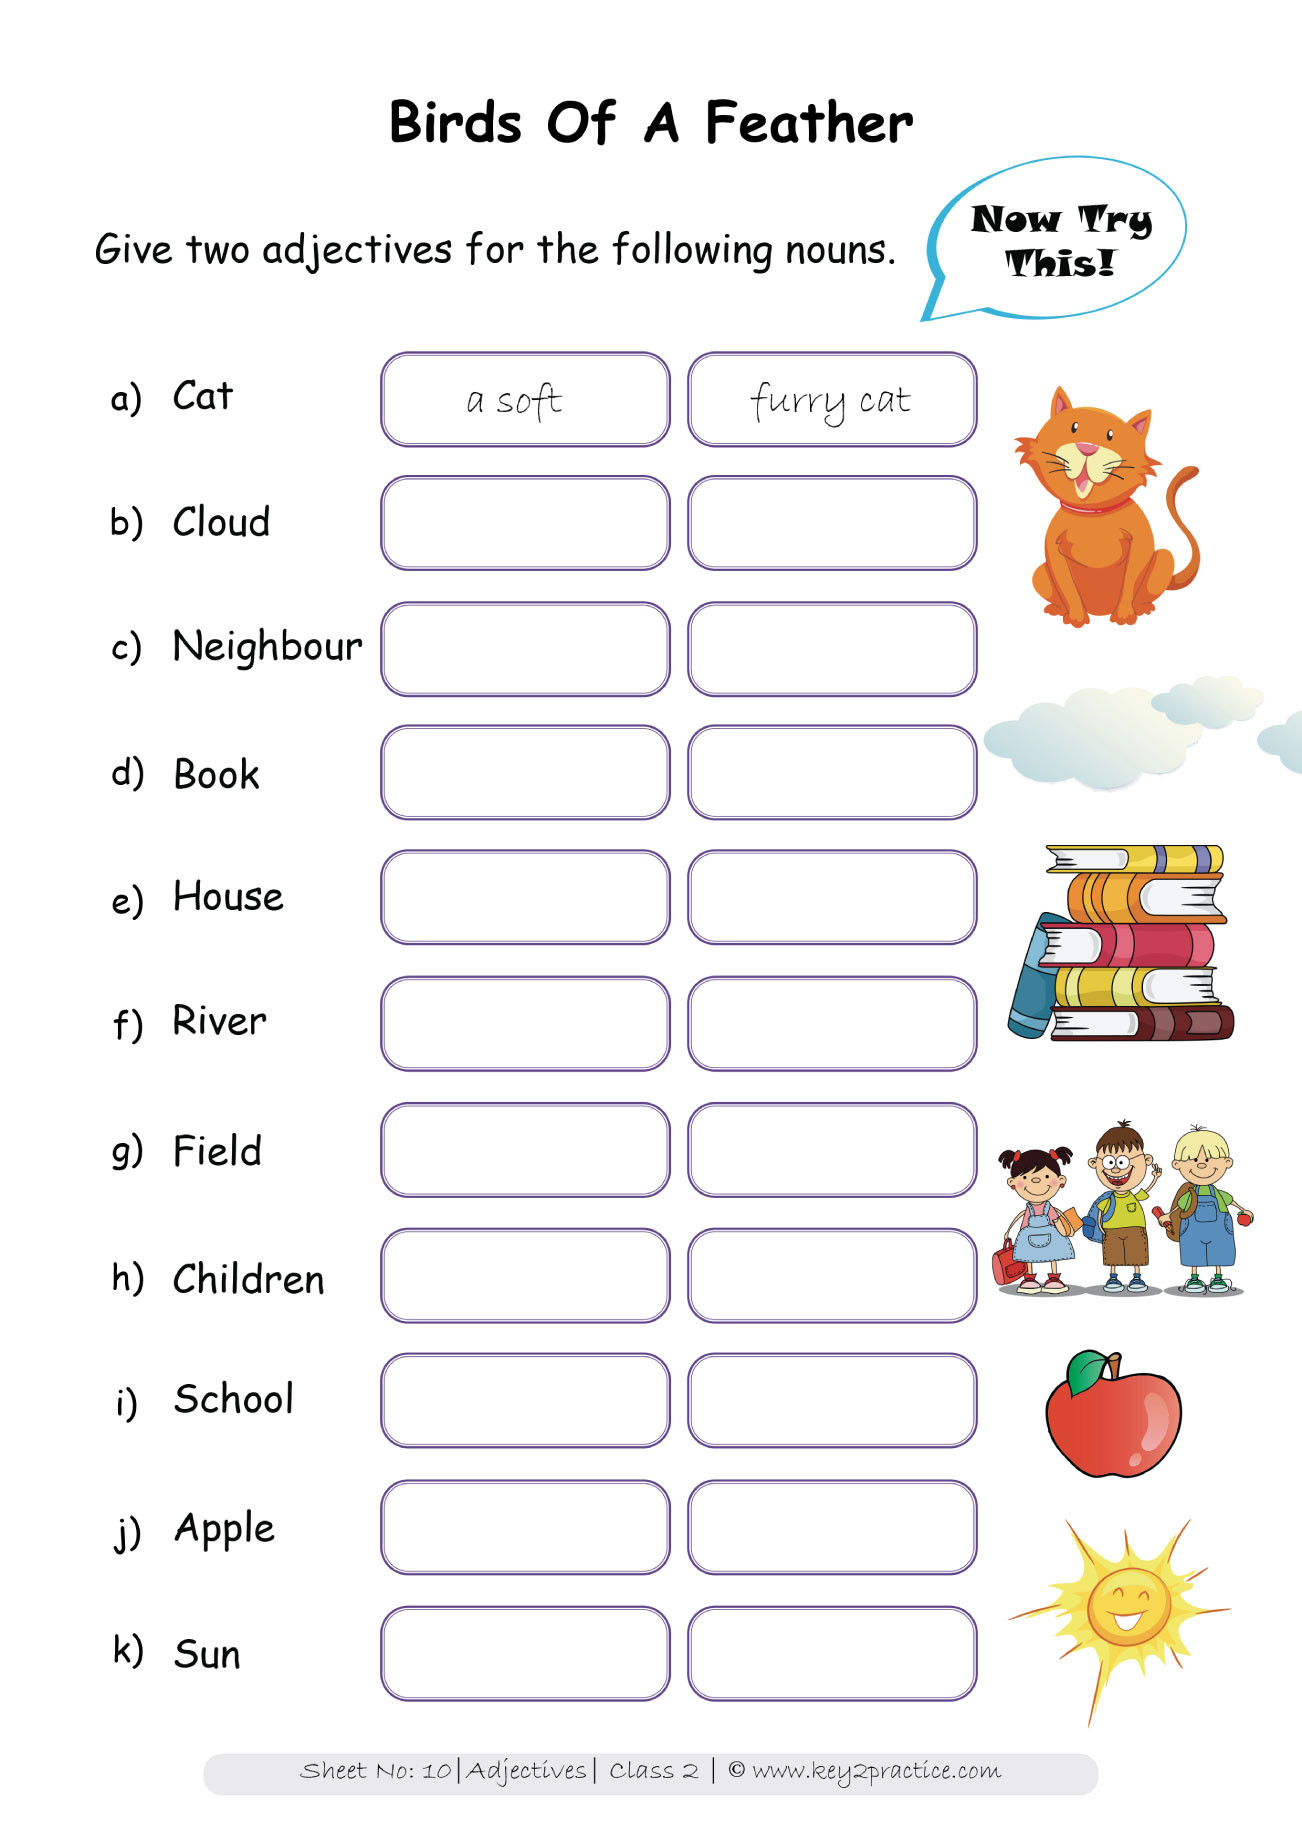 Adjectives Worksheets for Grade 2 Worksheets On Adjectives Grade 2 I English Key2practice